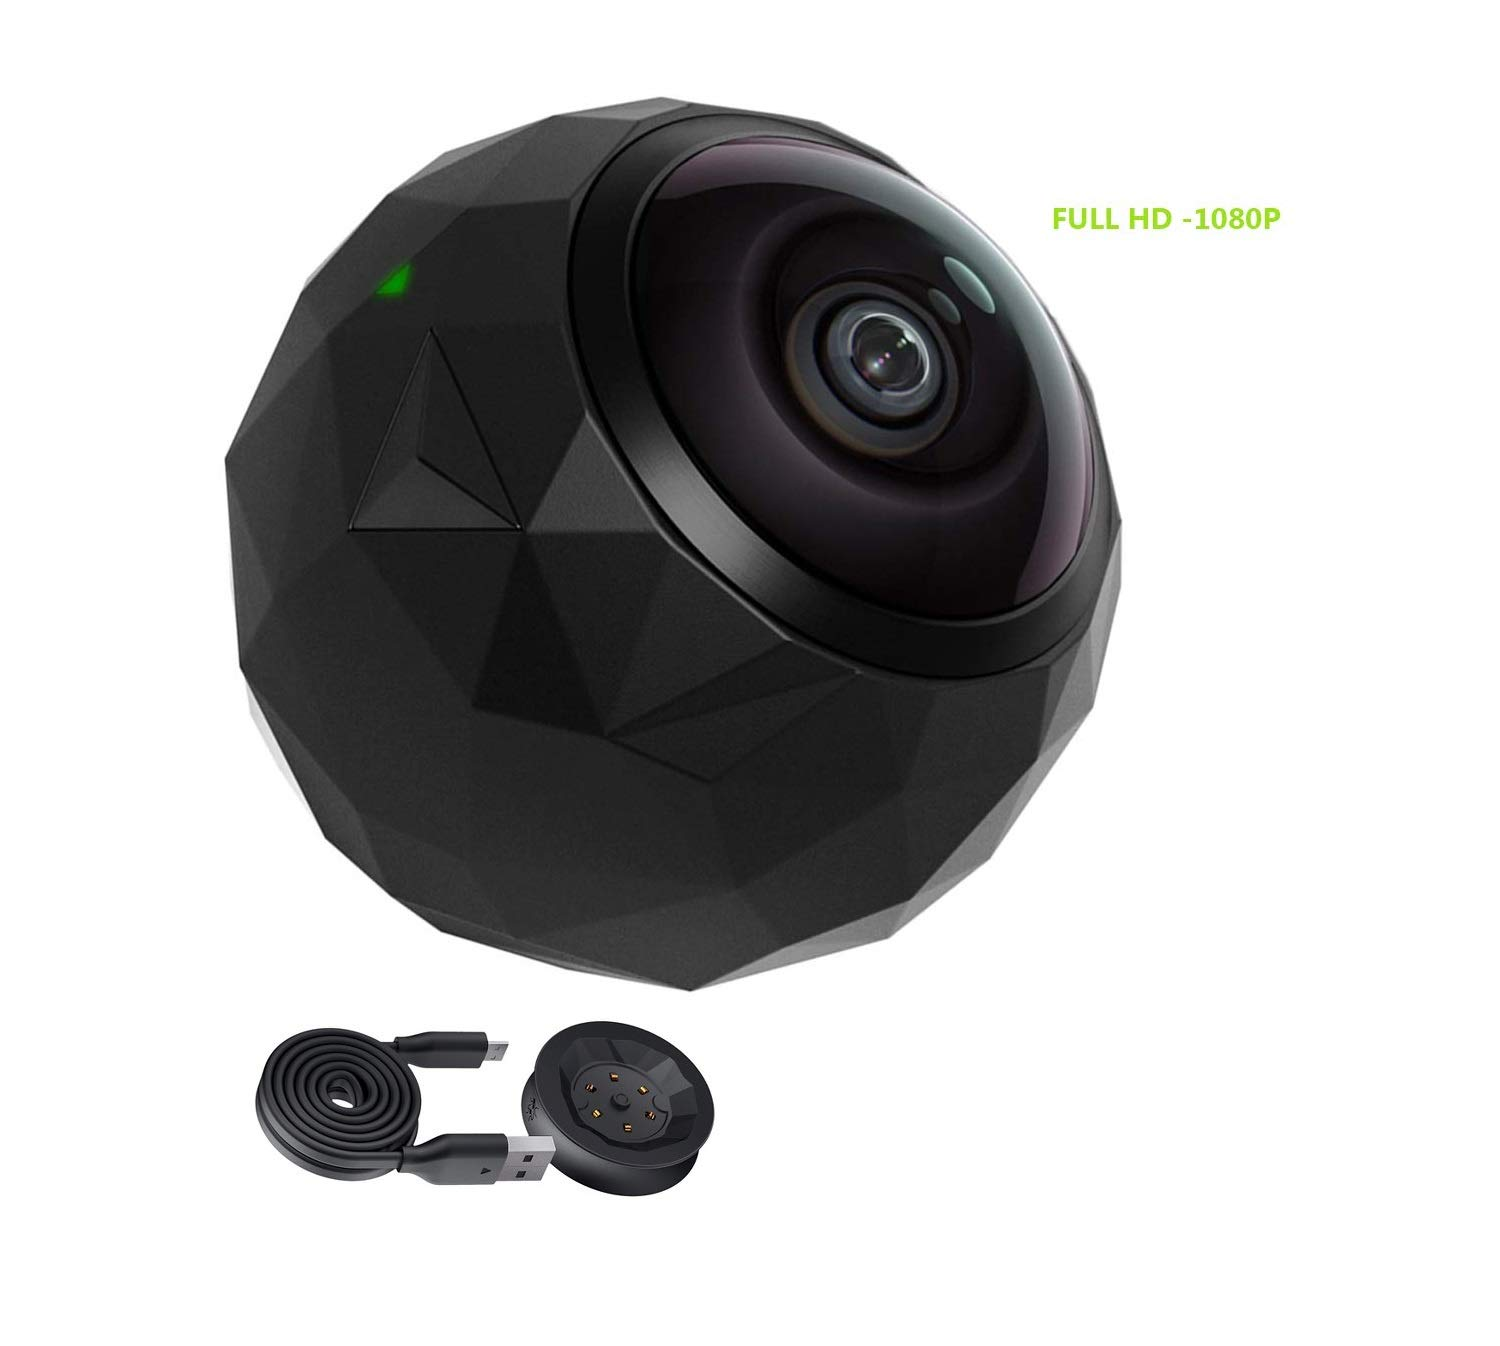 360fly 360° HD Video 1080p Camera -Dust-Proof, Shockproof, Water Resistant- (Renewed) by 360fly Kit